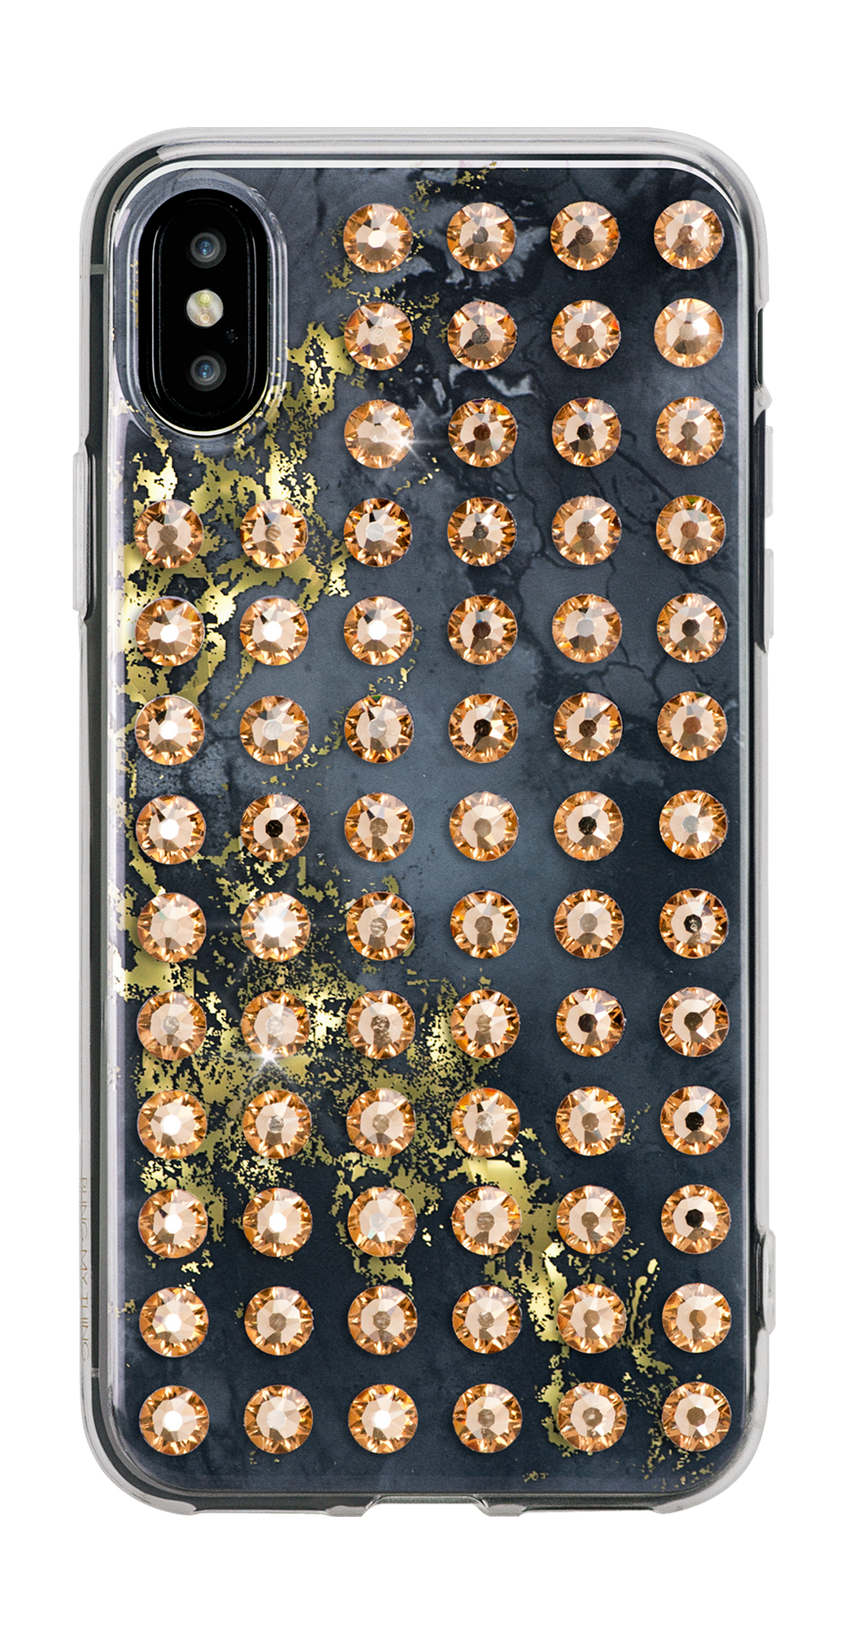 EXTRAVAGANZA ᛫ ONYX ᛫ hard clip-on case with Swarovski Crystals for iPhone X & XS - Bling My Thing - Swarovski Protective iPhone Case